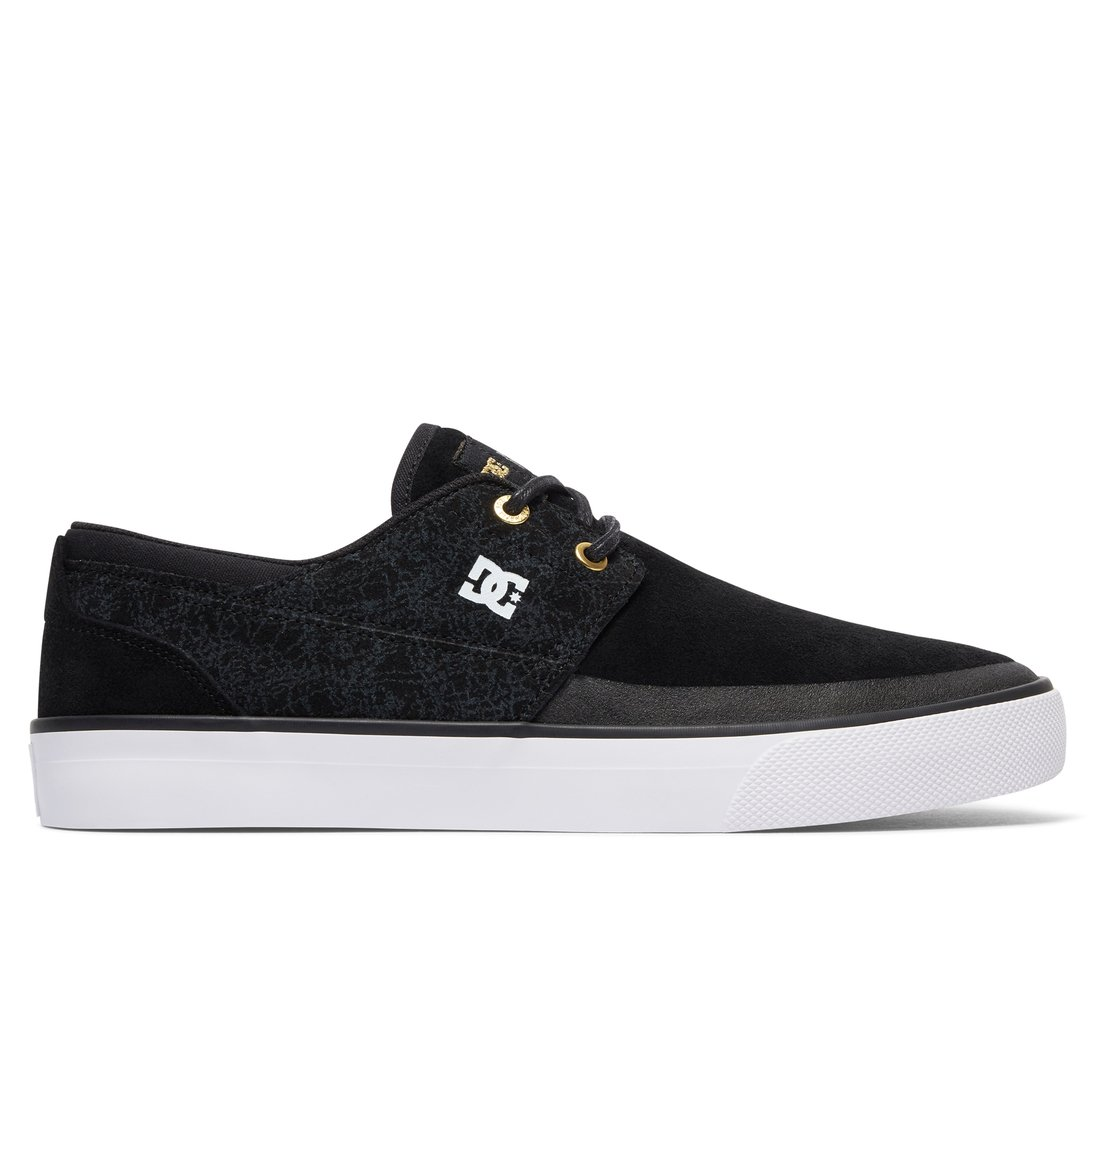 DC Shoes Chaussures Wes Kremer 2 Sk8 Mafia Chaussure Homme DC Shoes soldes